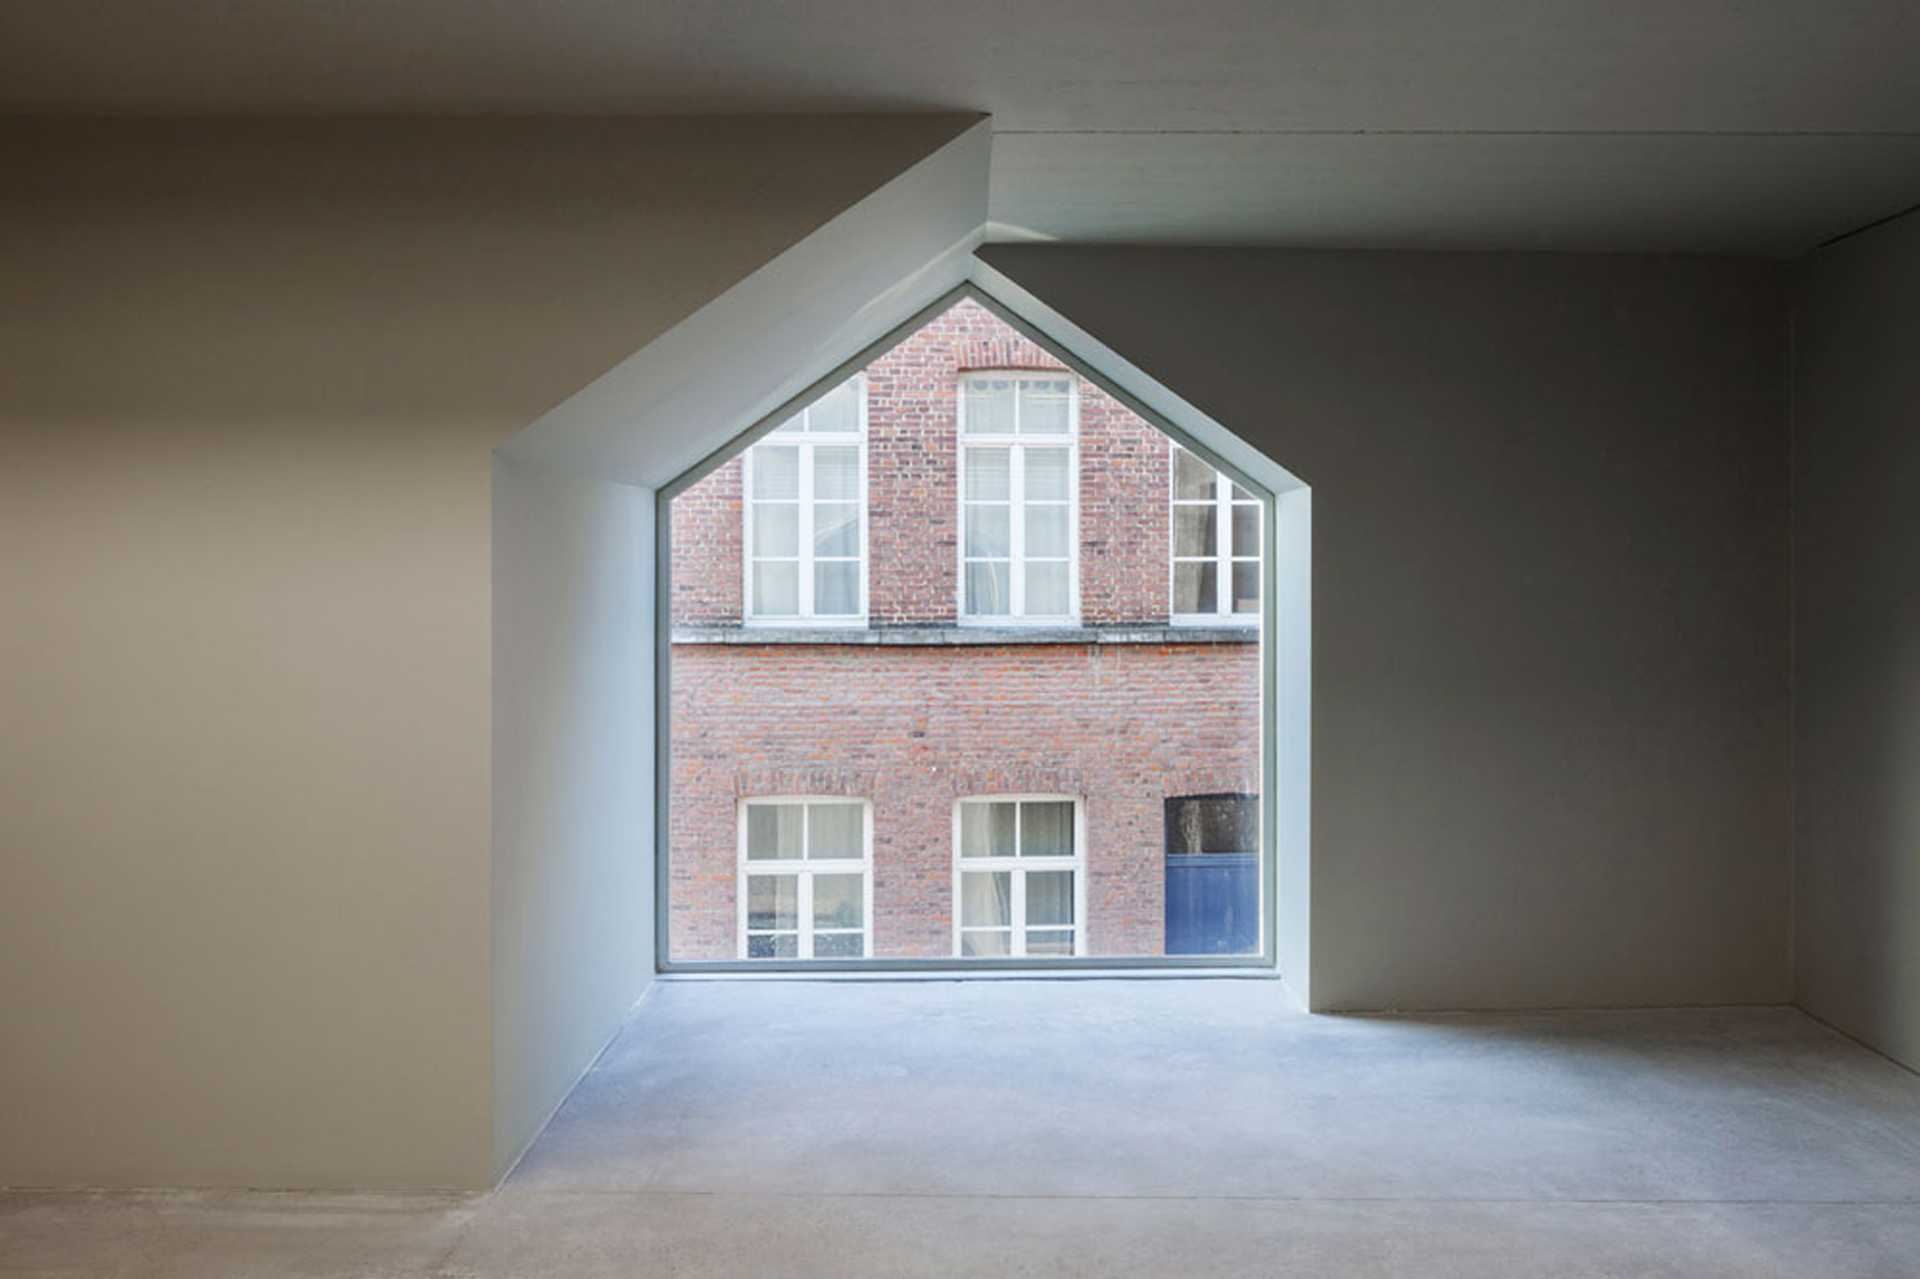 Architecture School in Tournai  - 5.0 39